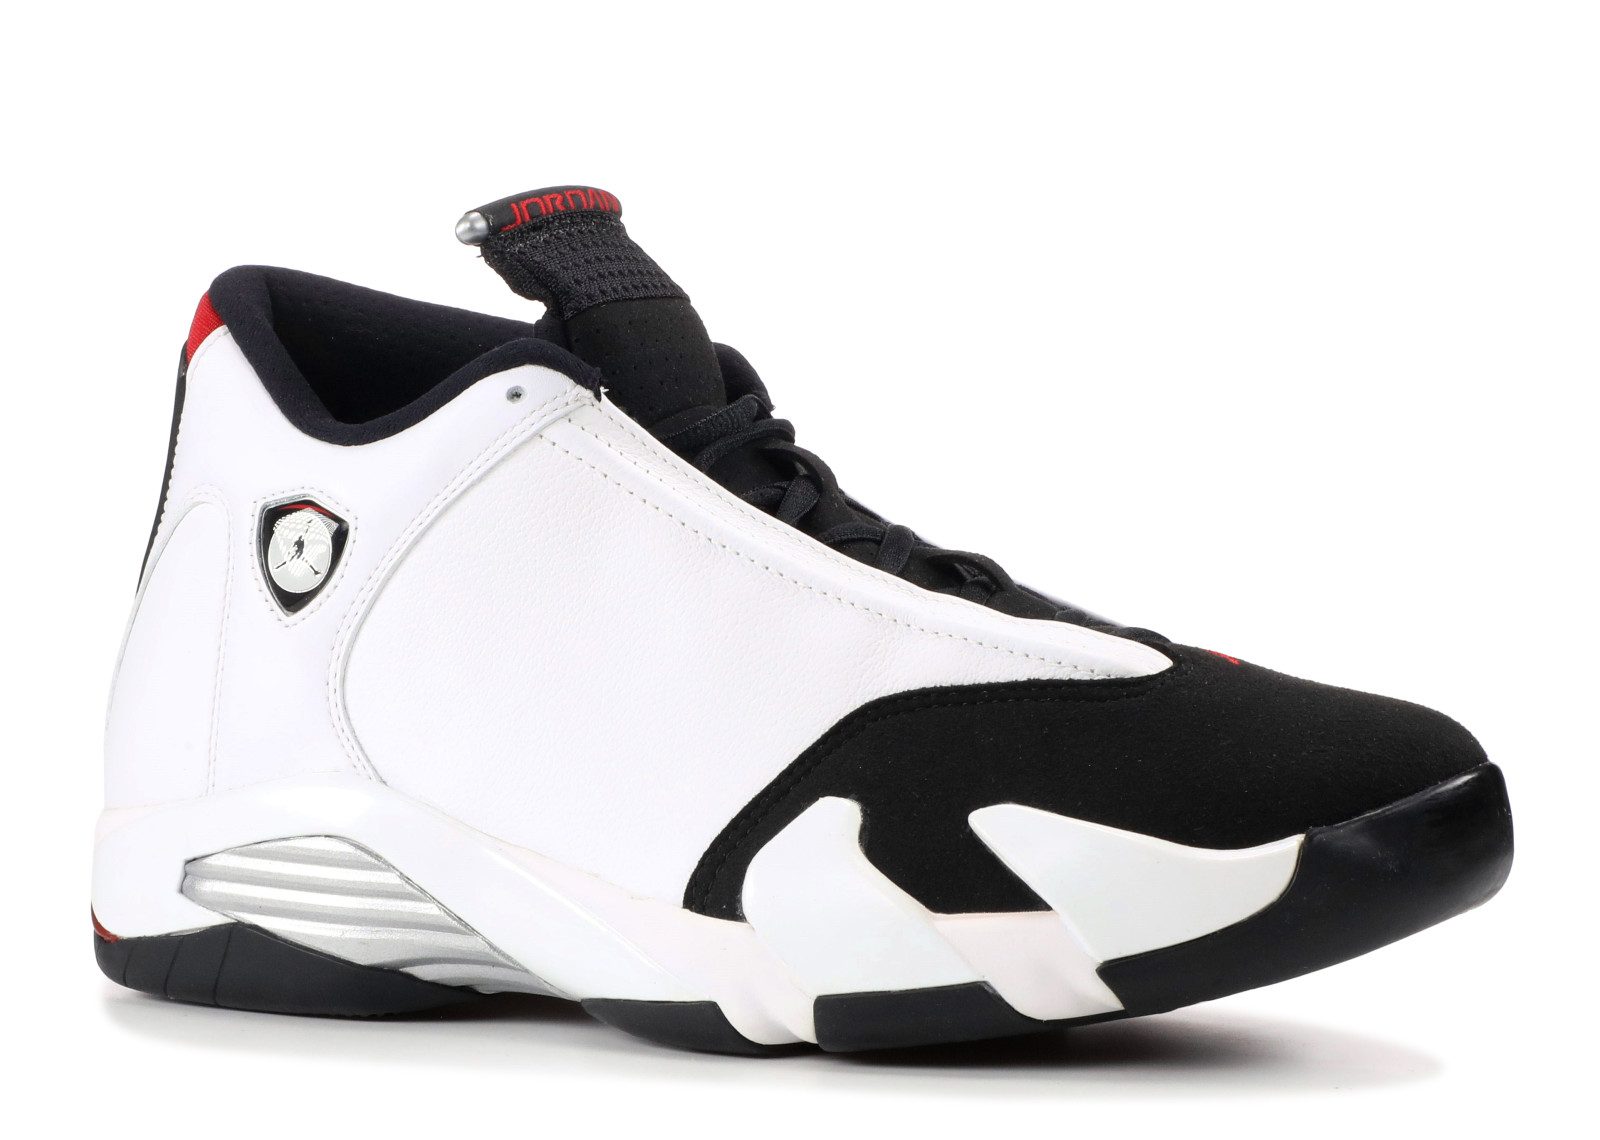 30bb38778d23 Jordan 14 Retro Black Toe (2014) - 1